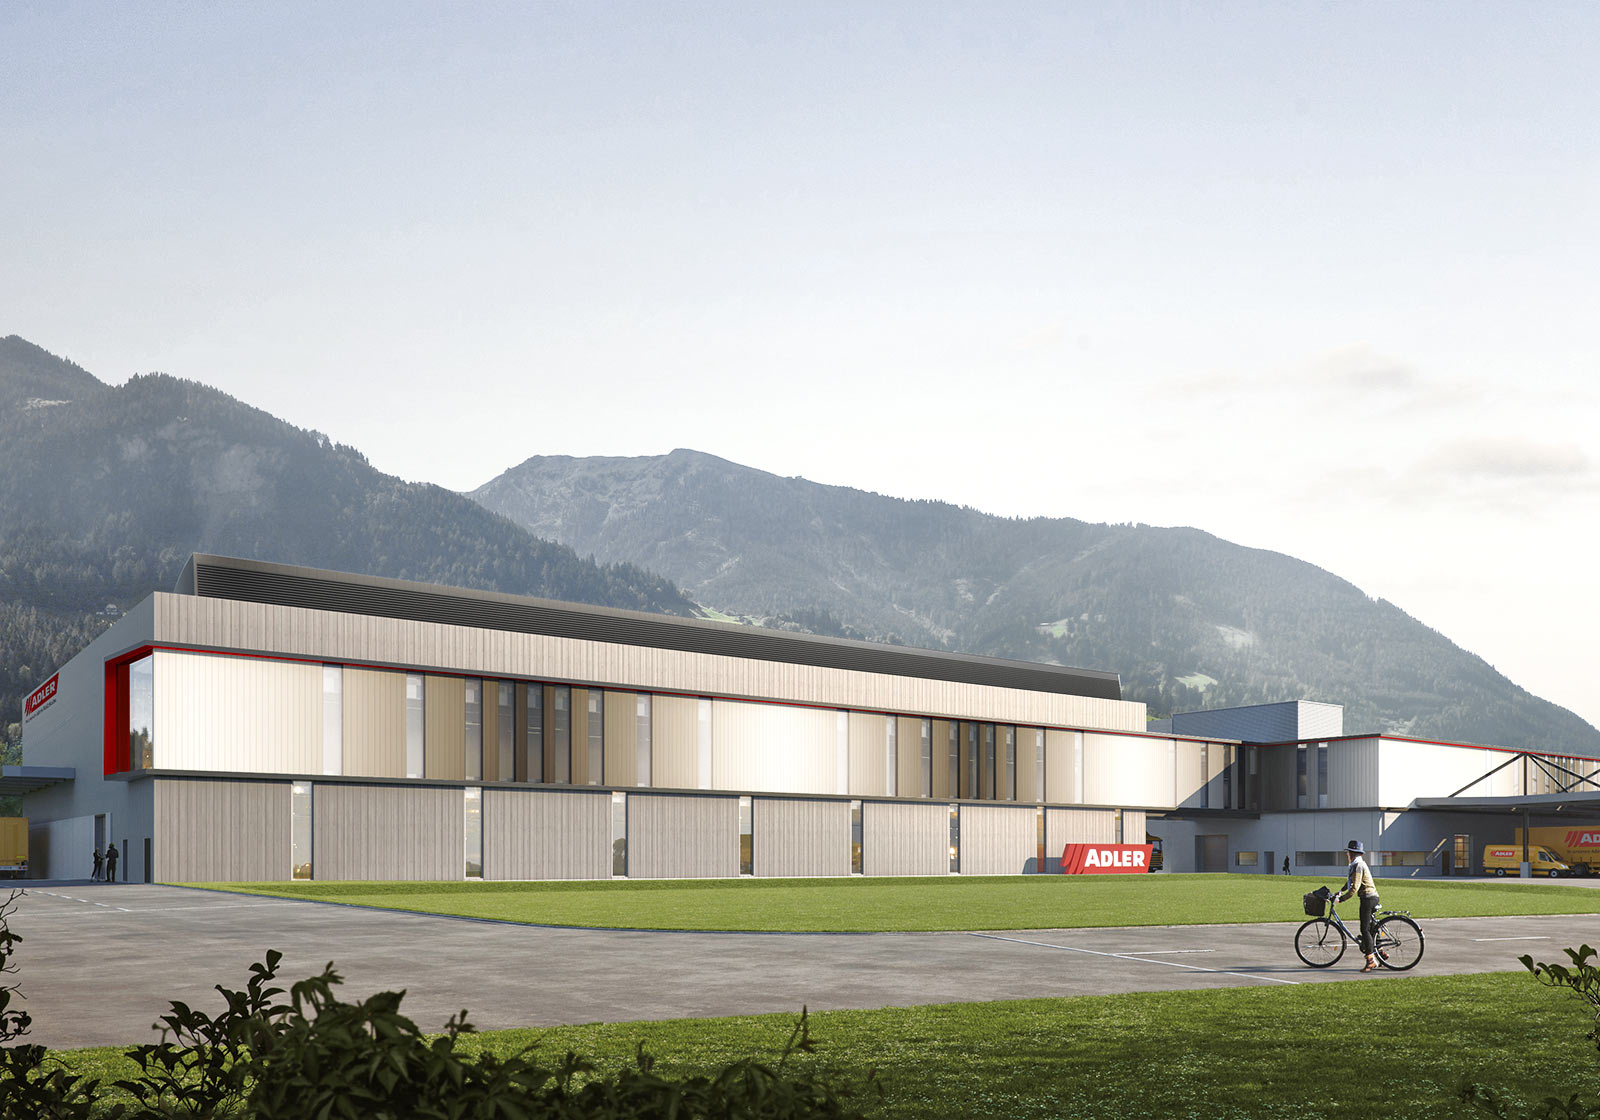 The future appearance of the state-of-the-art production building. Photo: ADLER